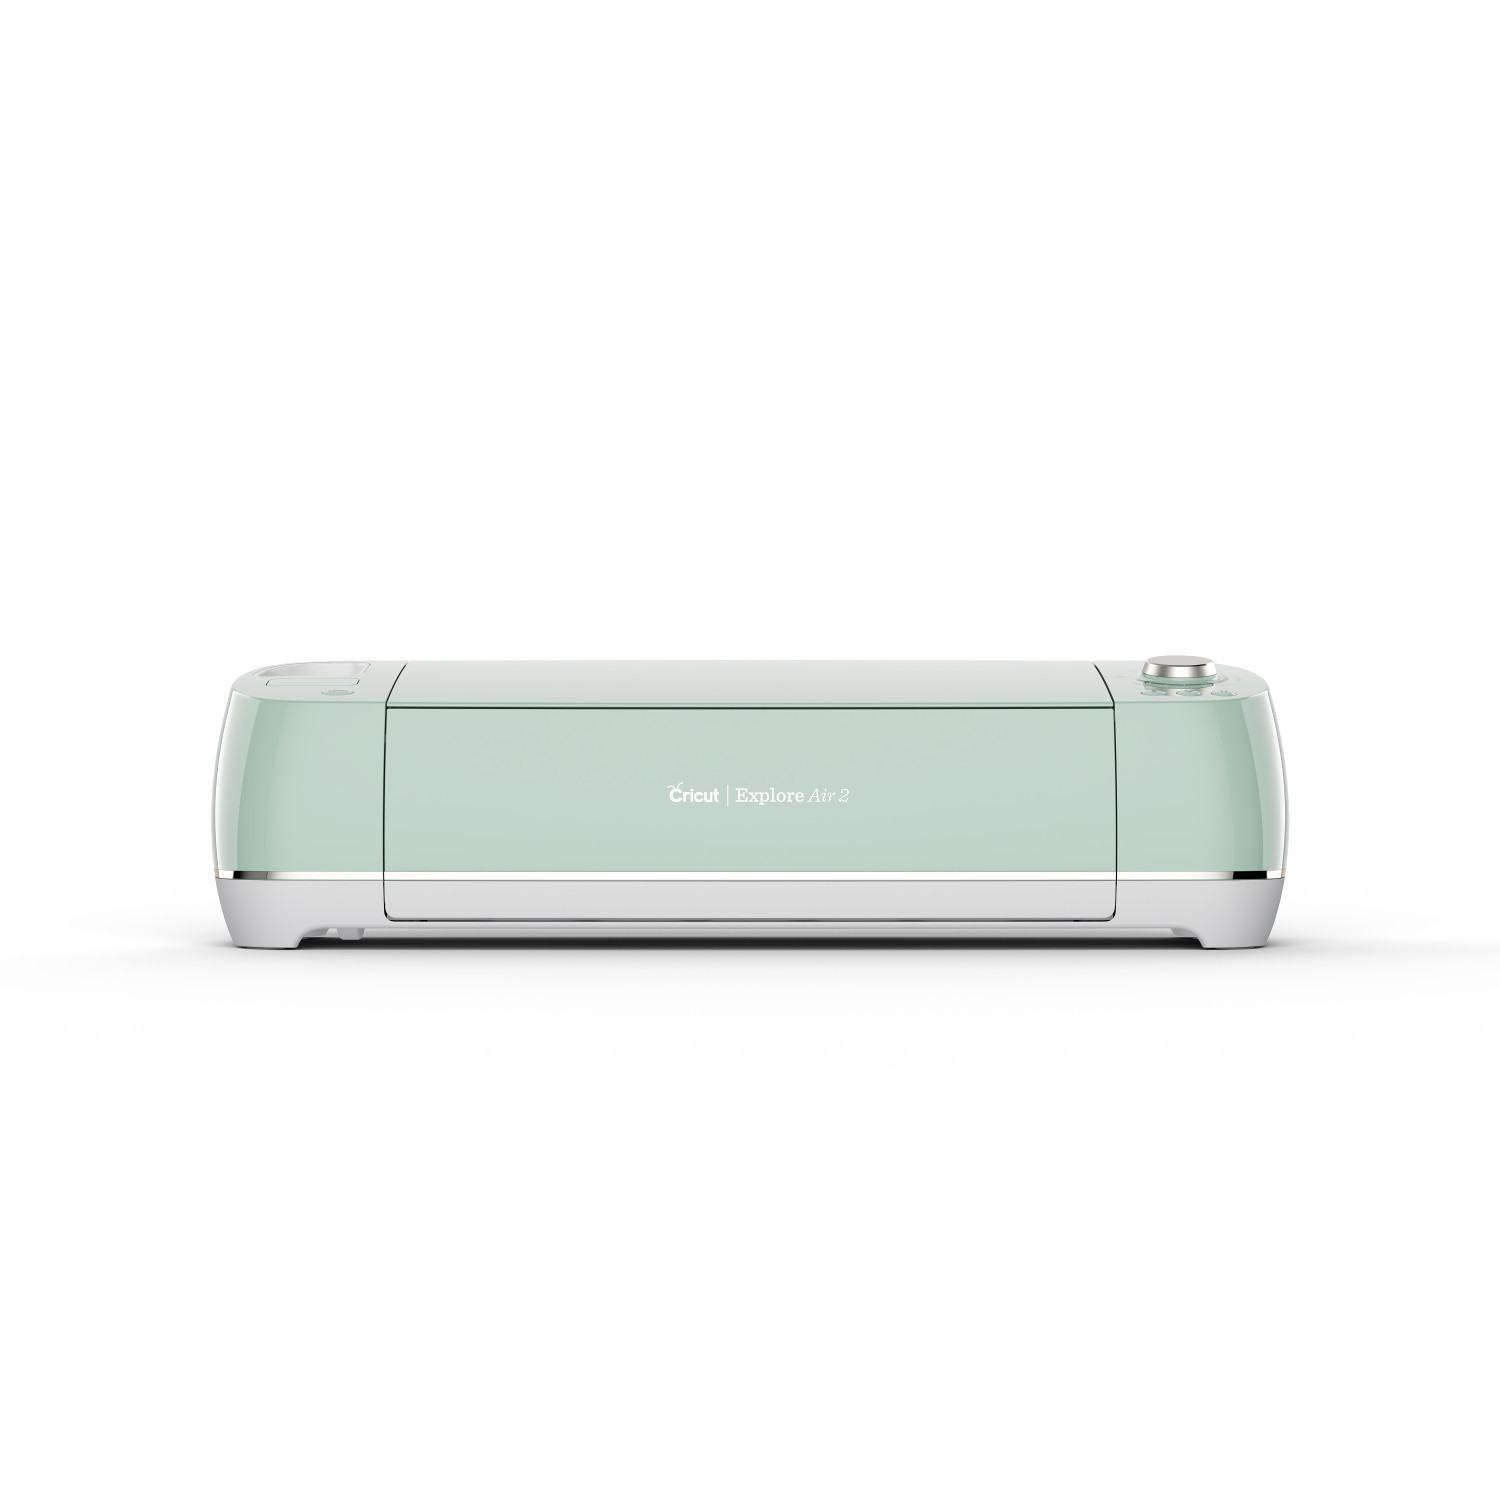 2007000 - Cricut Explore Air 2 (Mint)